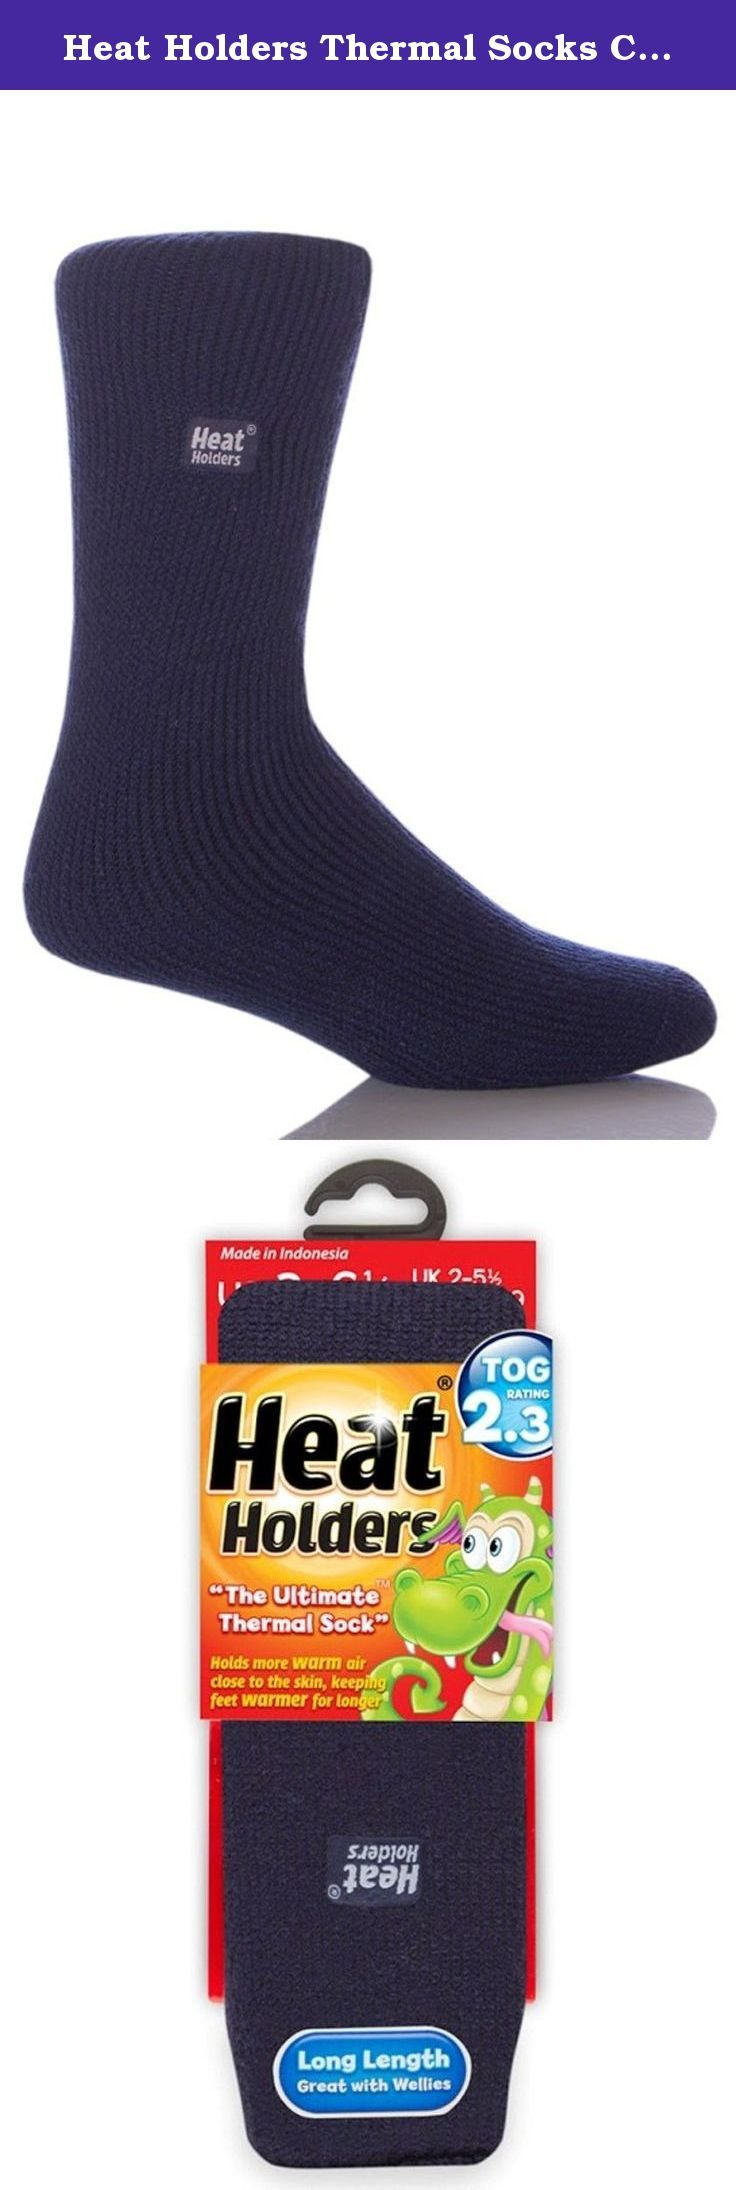 Heat Holders Thermal Socks Childrens Older Navy. Heat Holders® socks for children are available in two sizes, both in array of lively colors! The Younger Children's style is children's size 10 - 2½, for children aged approximately 3 to 8 years old. The Older Children's style is children's size 3 - 6½, for children aged approximately 8+ years. Both styles are in a long length. Choose a style to buy now! Tights for girls ages 7-13 also available. All styles available in multiple colors!.